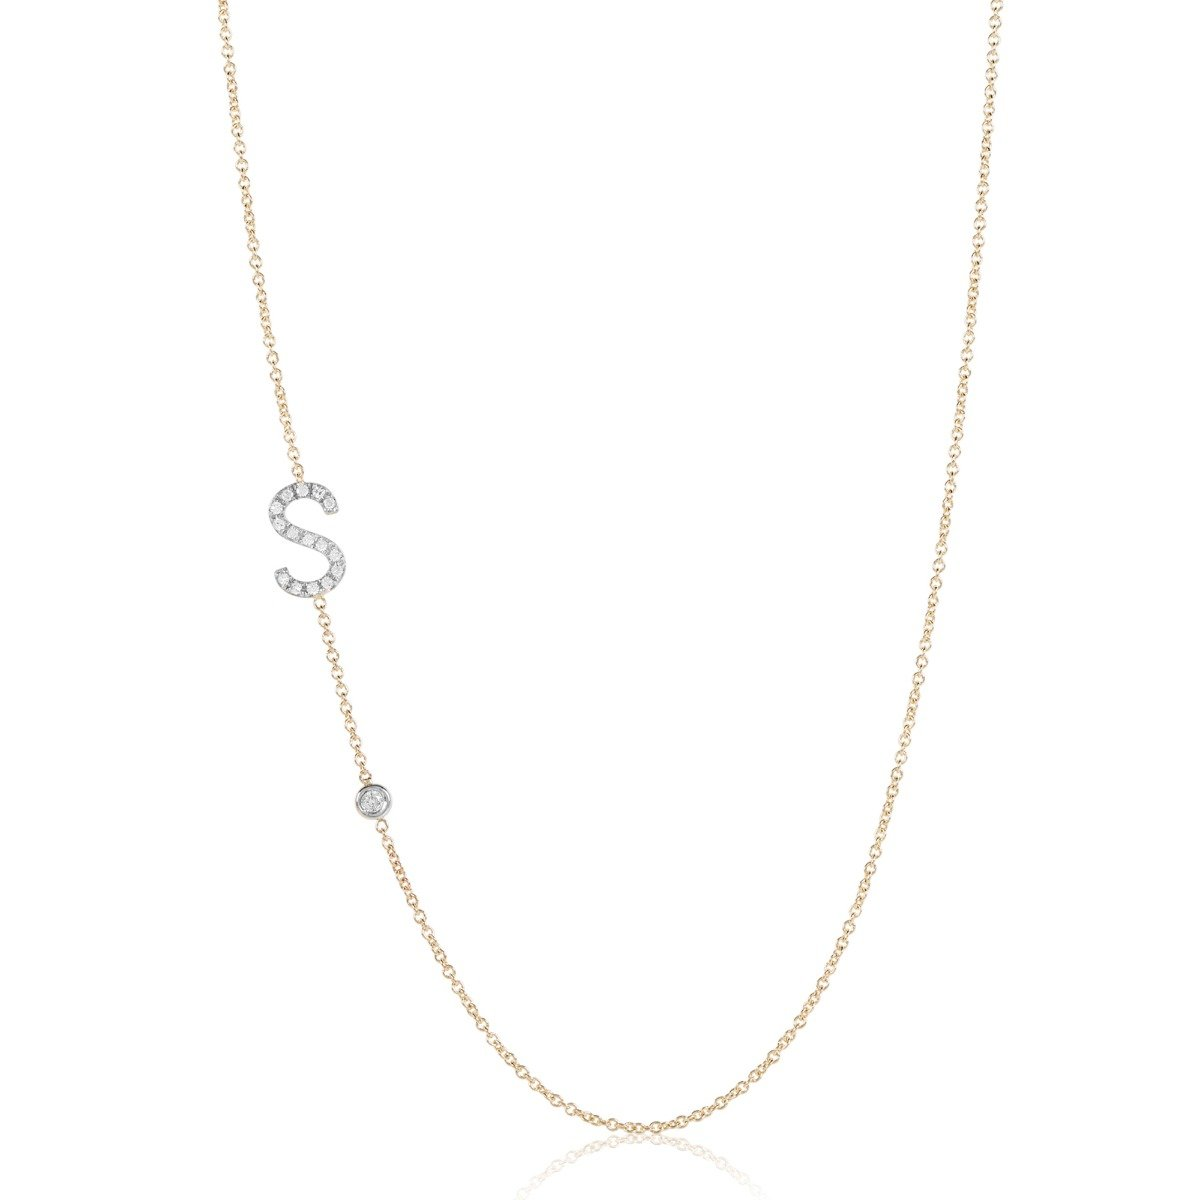 letters-by-zoe-diamond-initial-and-bezel-diamond-necklace-close-up_a1322d18-0aa0-48f9-a051-c6b3bc2cb915.jpg